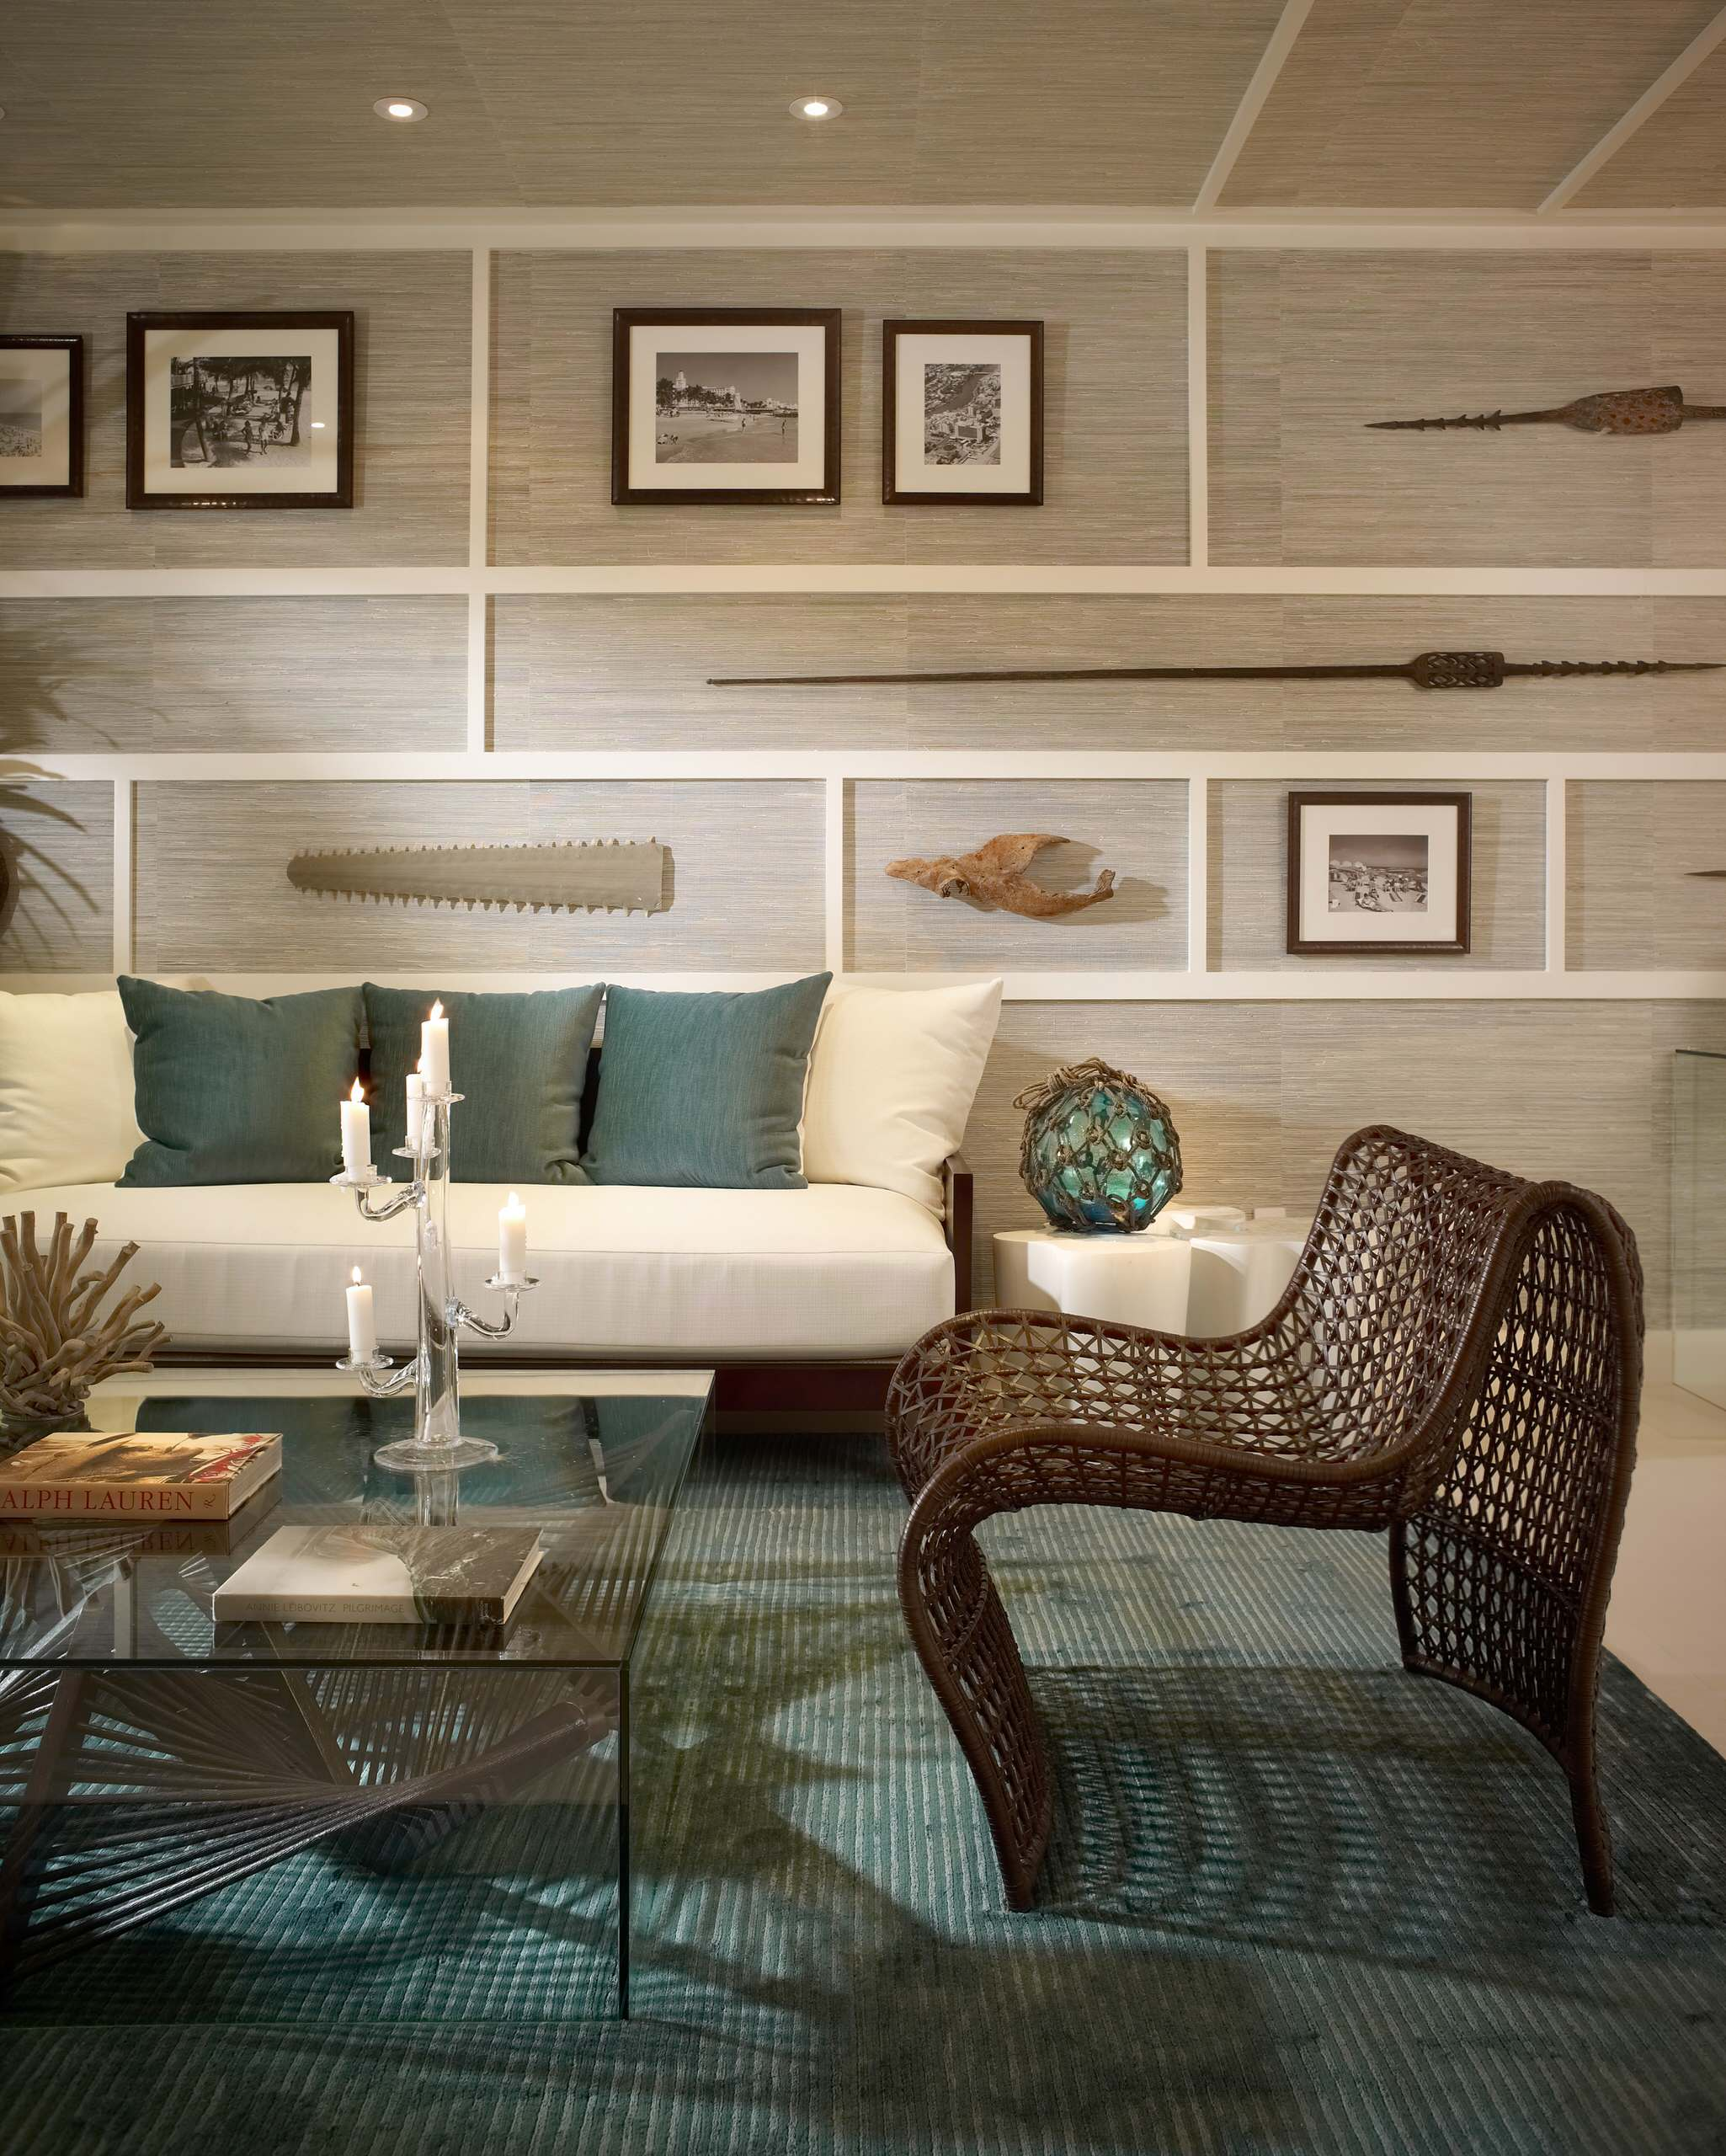 Inspiring Decorative Wall Panels with Visual Effect for Your Home: Tropical Living Room With Decorative Wall Panels Plus Wall Decor And Ceiling Lighting With Glass Coffee Table On Turquoise Rug Also Cushion On White Sofa And Woven Armchair Plus Candle